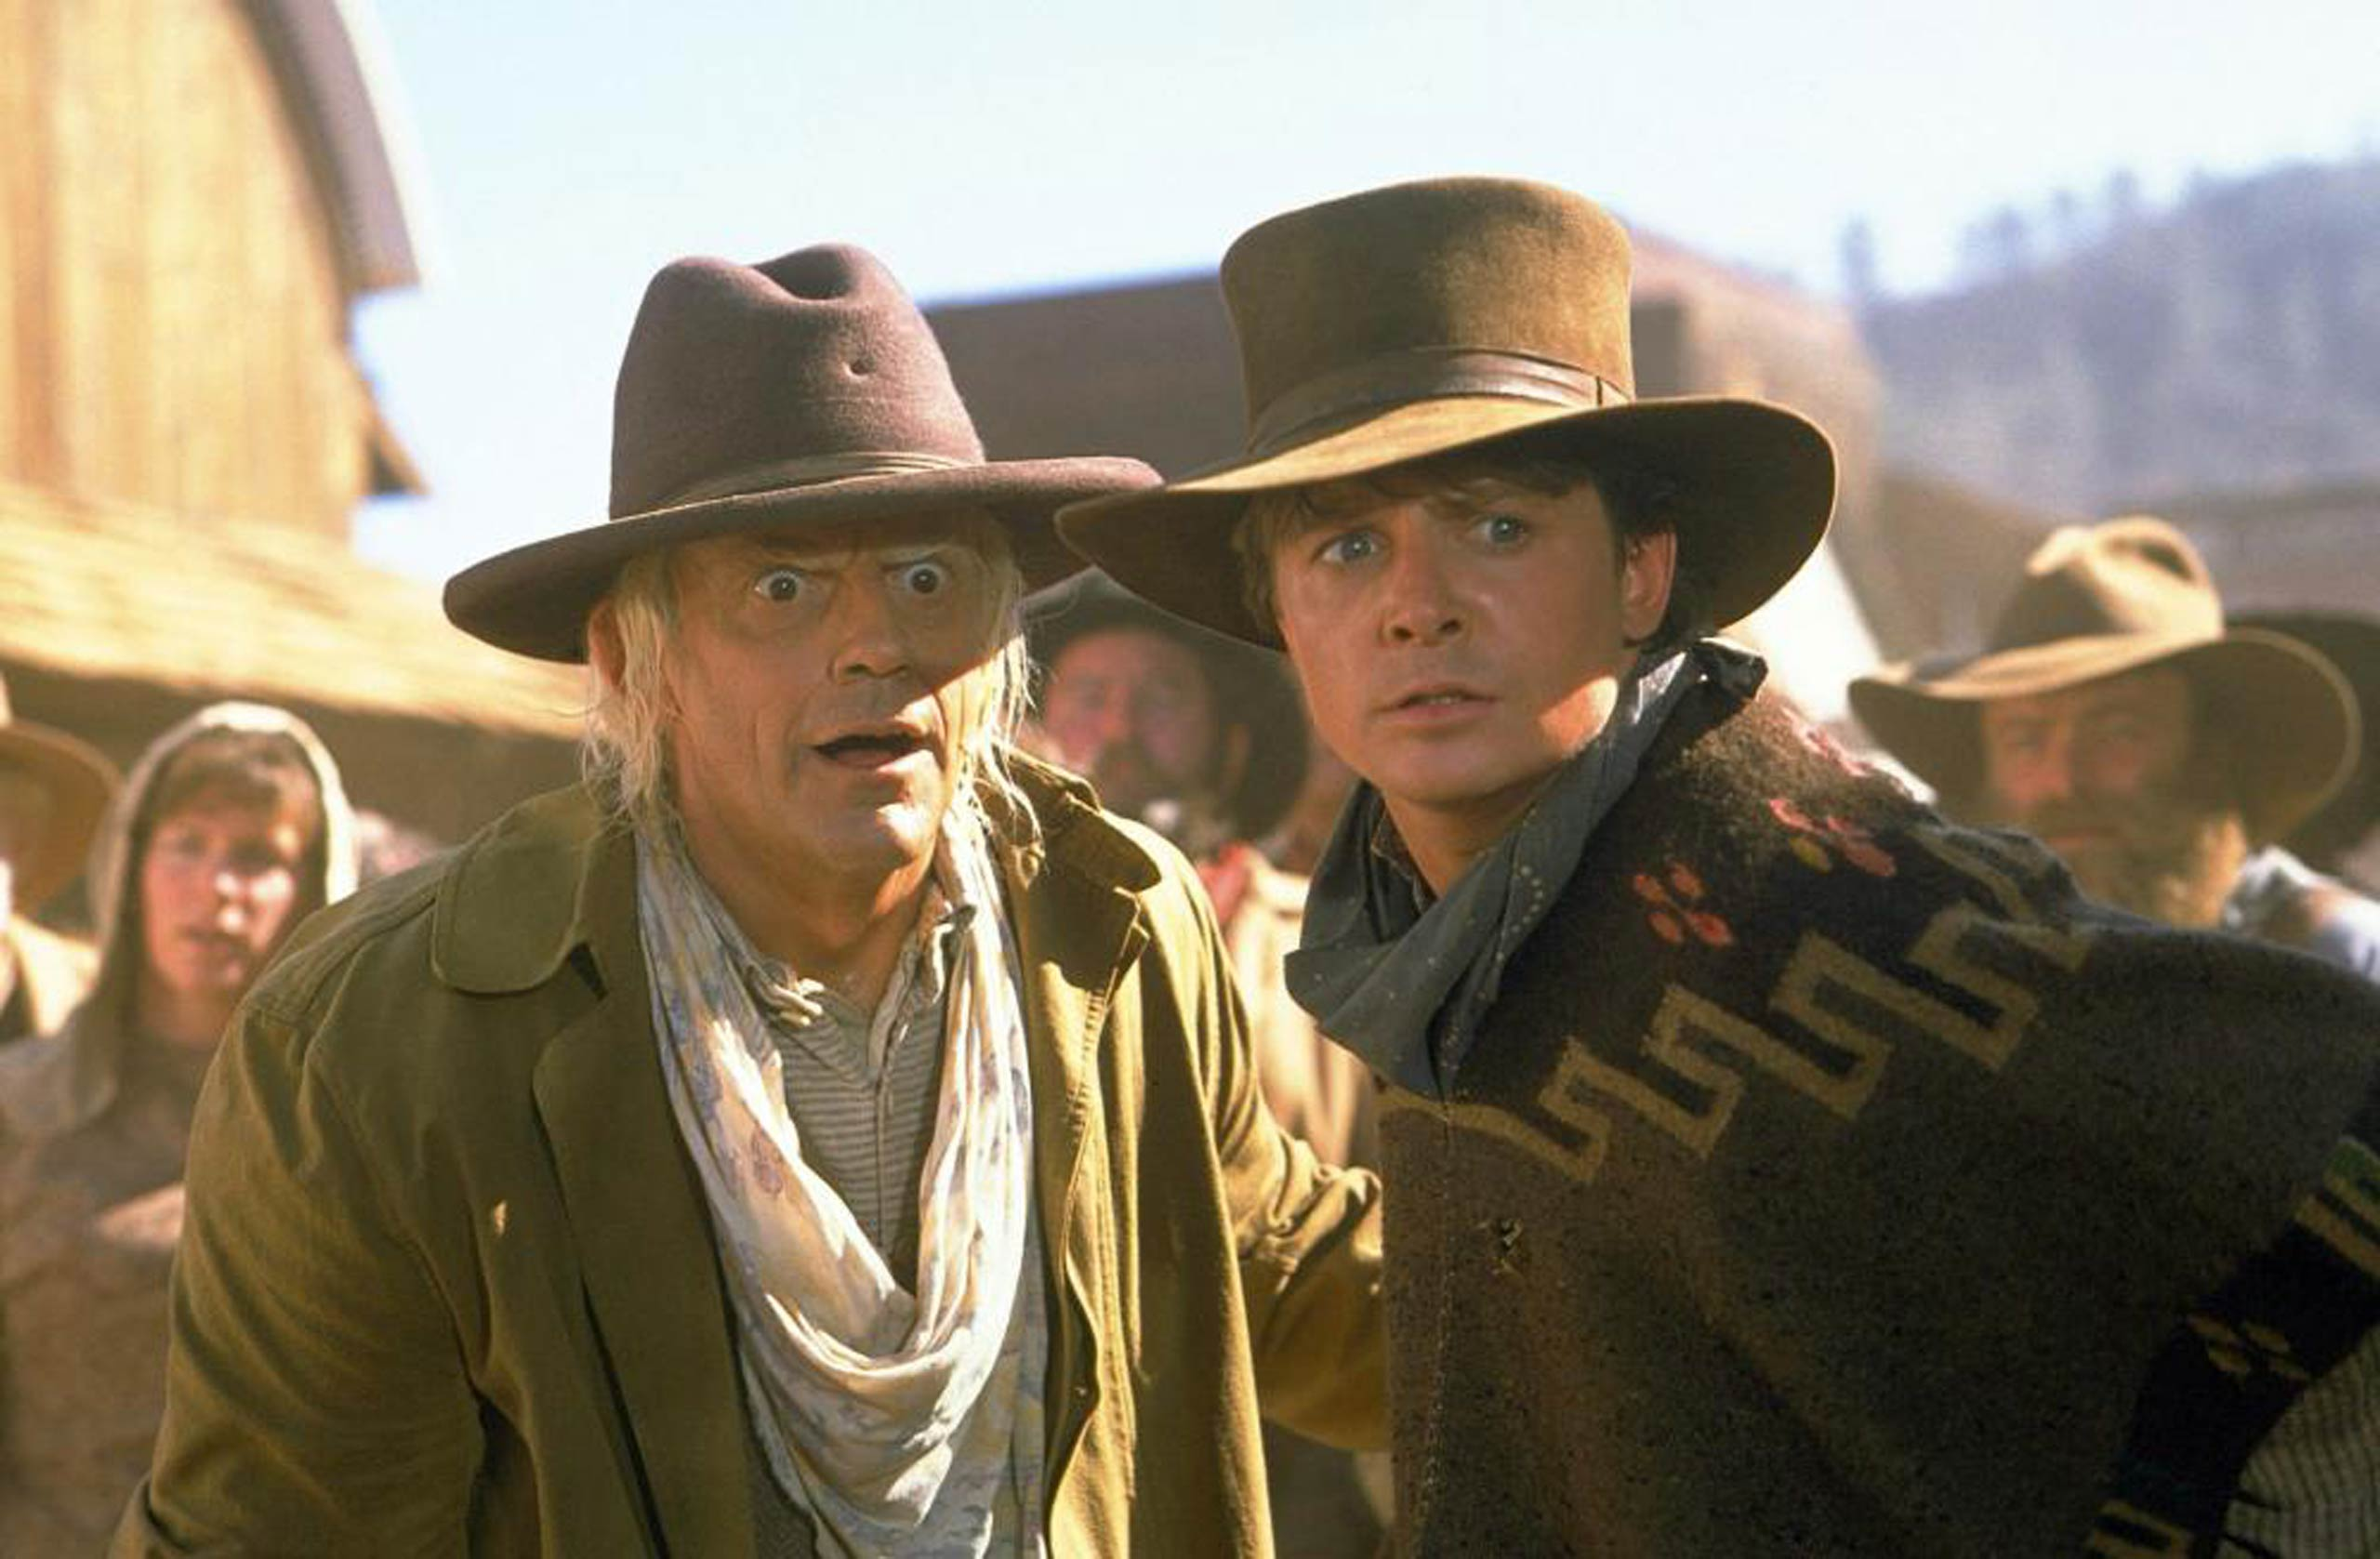 <strong><i>Back to the Future Part III</i></strong> In 1990, the final installment of the <i>Back to the Future</i> trilogy brought Marty McFly (Michael J. Fox) back to the big screen for one last time-travelling adventure.